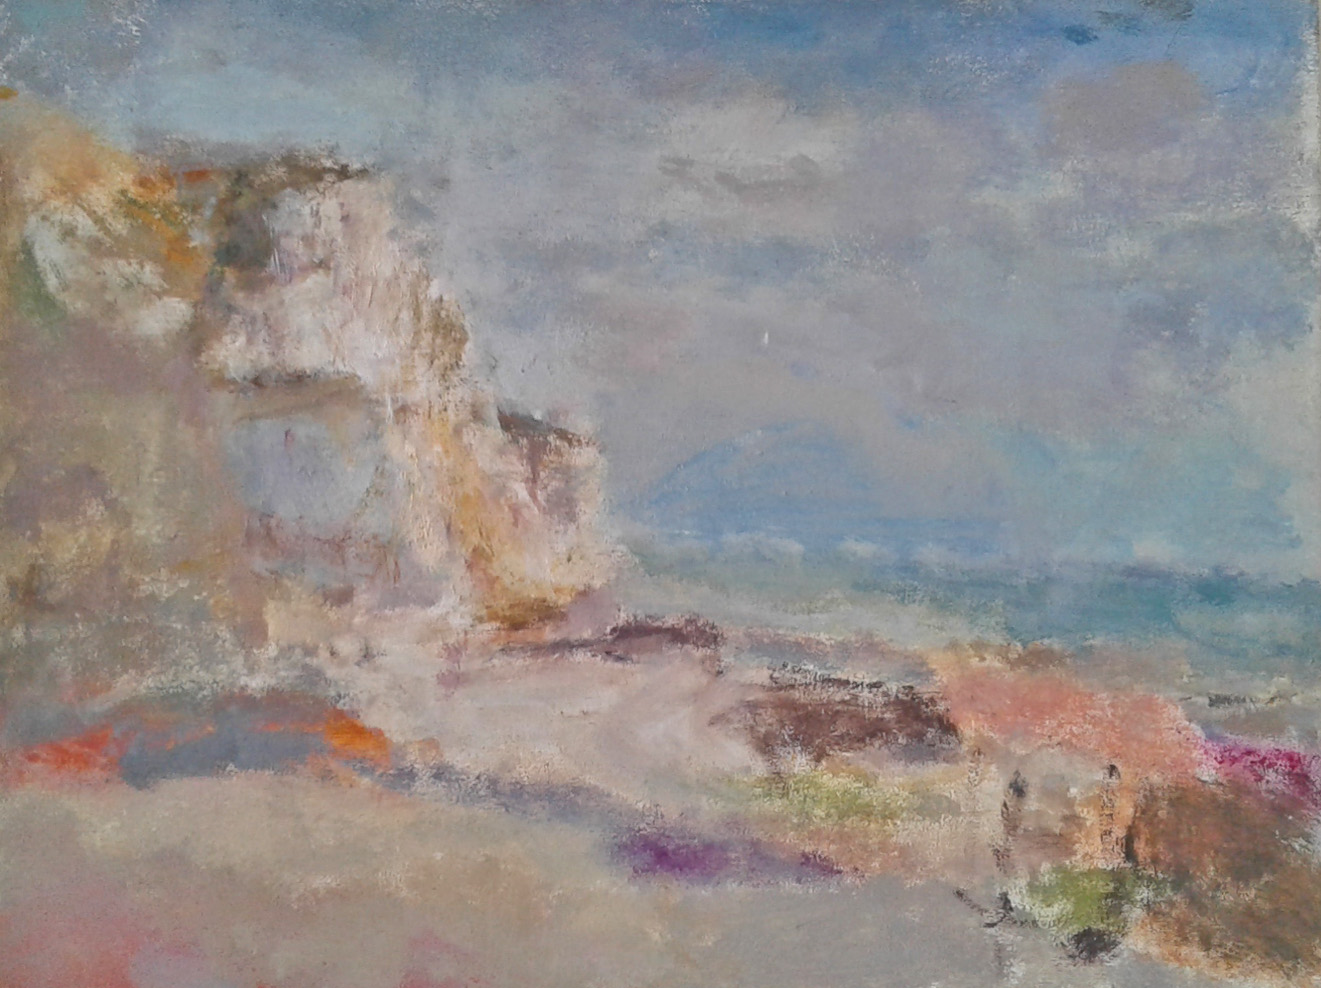 Artist: Anja Niedring  Title: Saltdean Noon  Size: 19.5 x 25 cm  Medium: Oil on panel  Price: SOLD